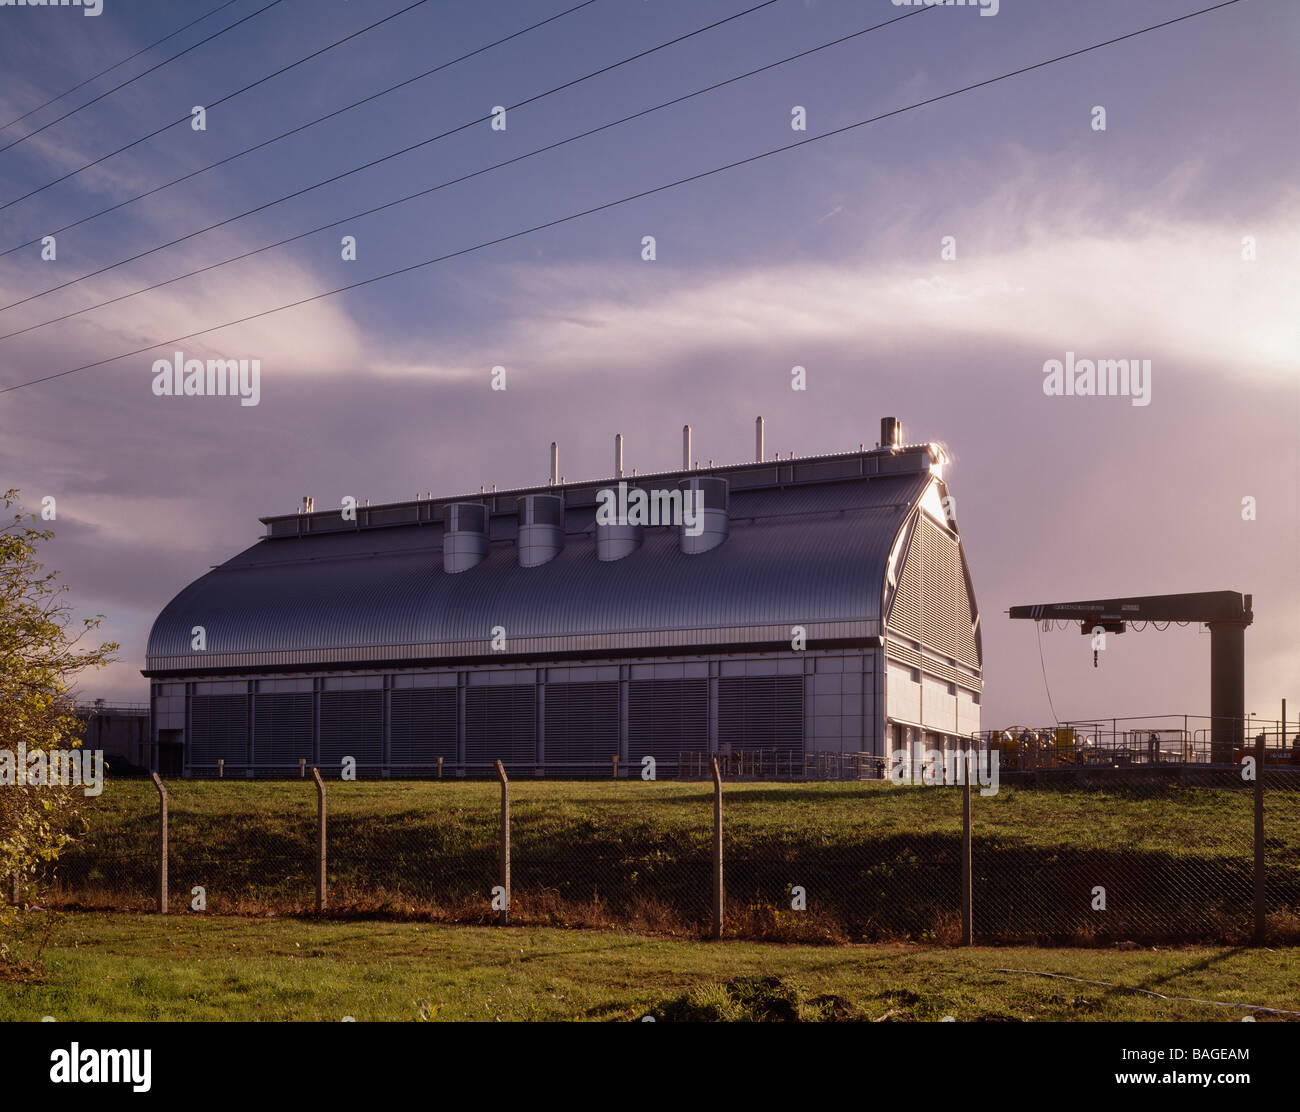 Abbey Mills Pumping Station, London, United Kingdom, Allies and Morrison, Abbey mills pumping station landscape - Stock Image